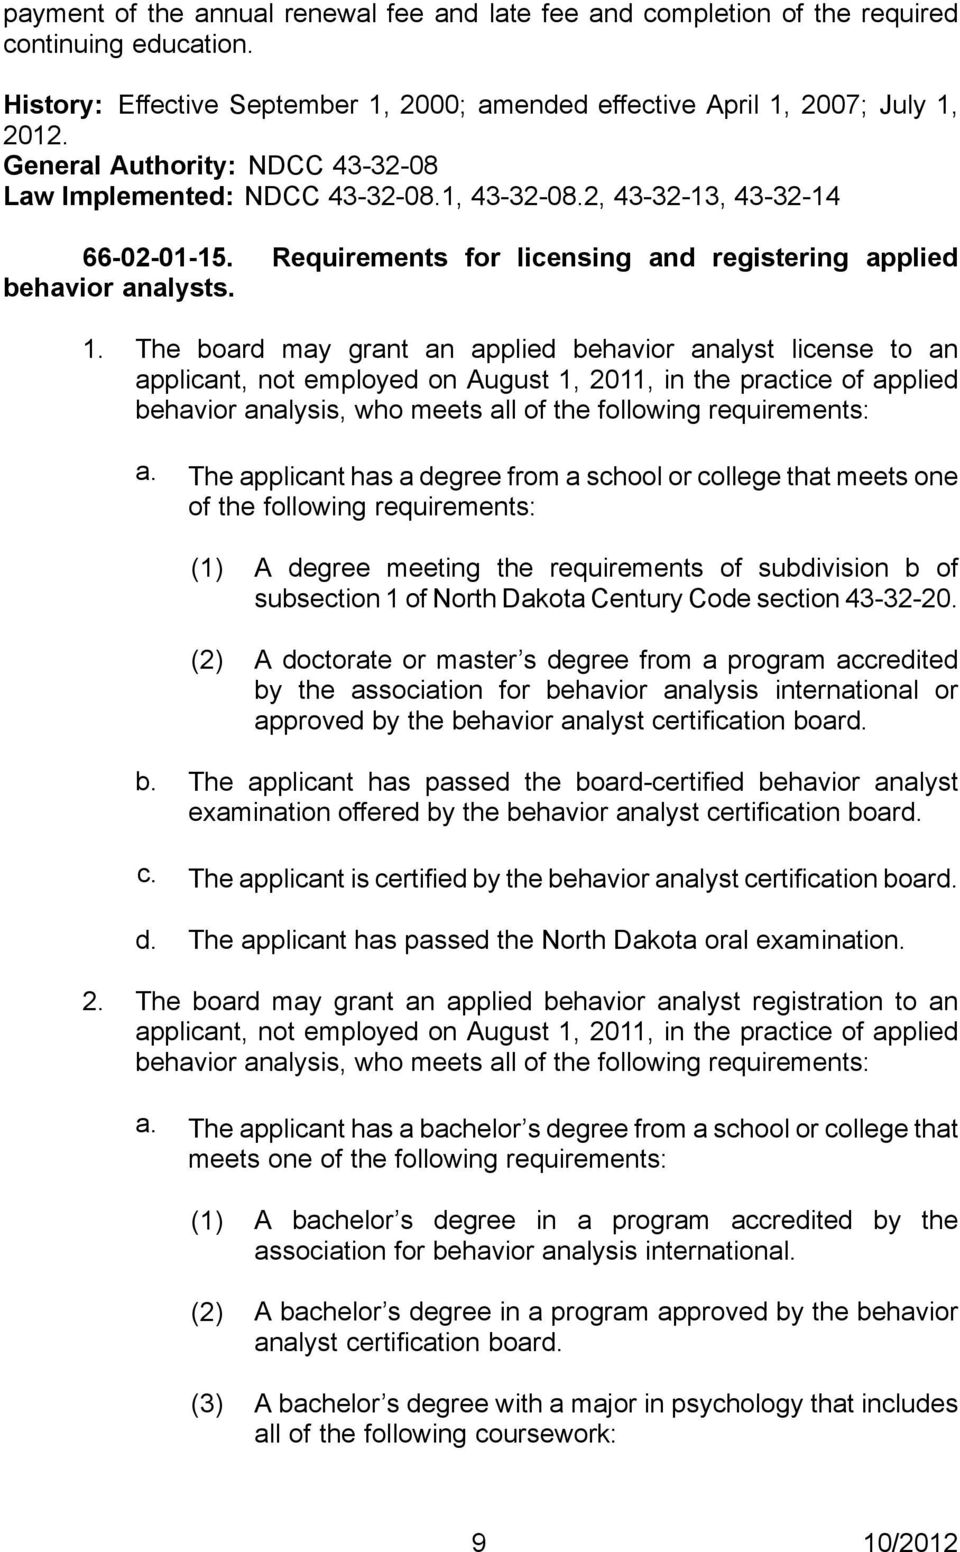 The board may grant an applied behavior analyst license to an applicant, not employed on August 1, 2011, in the practice of applied behavior analysis, who meets all of the following requirements: a.